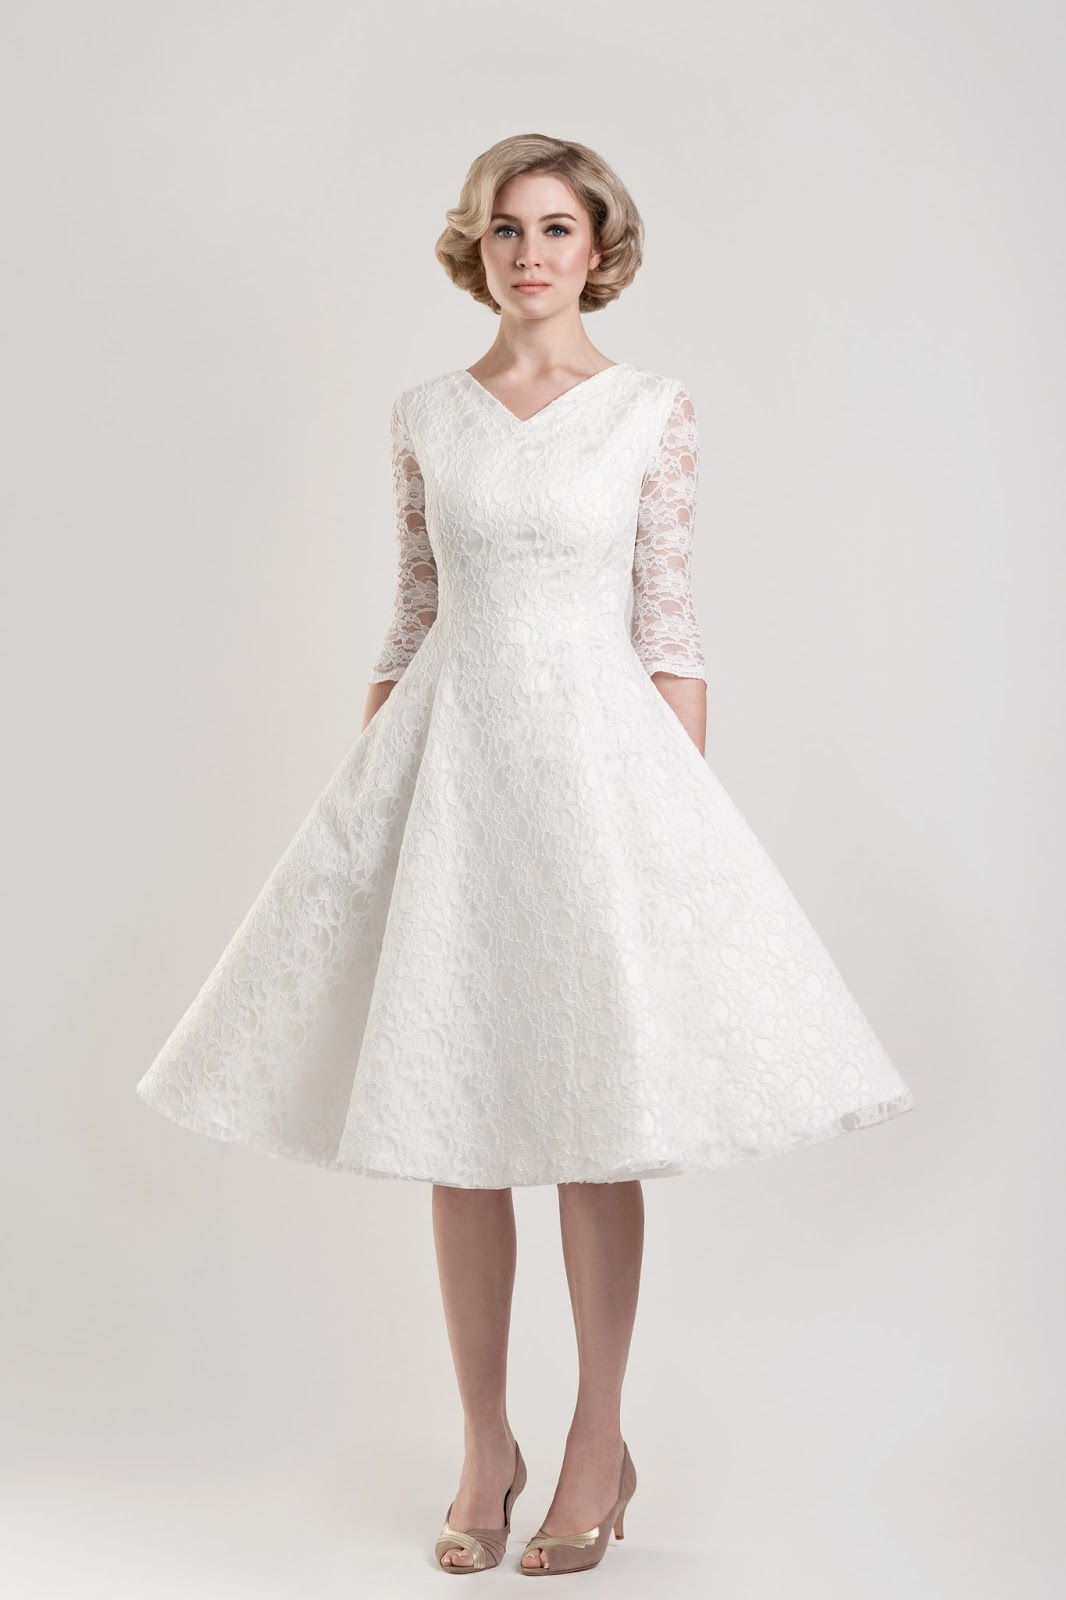 Short Wedding Dresses For Older Brides